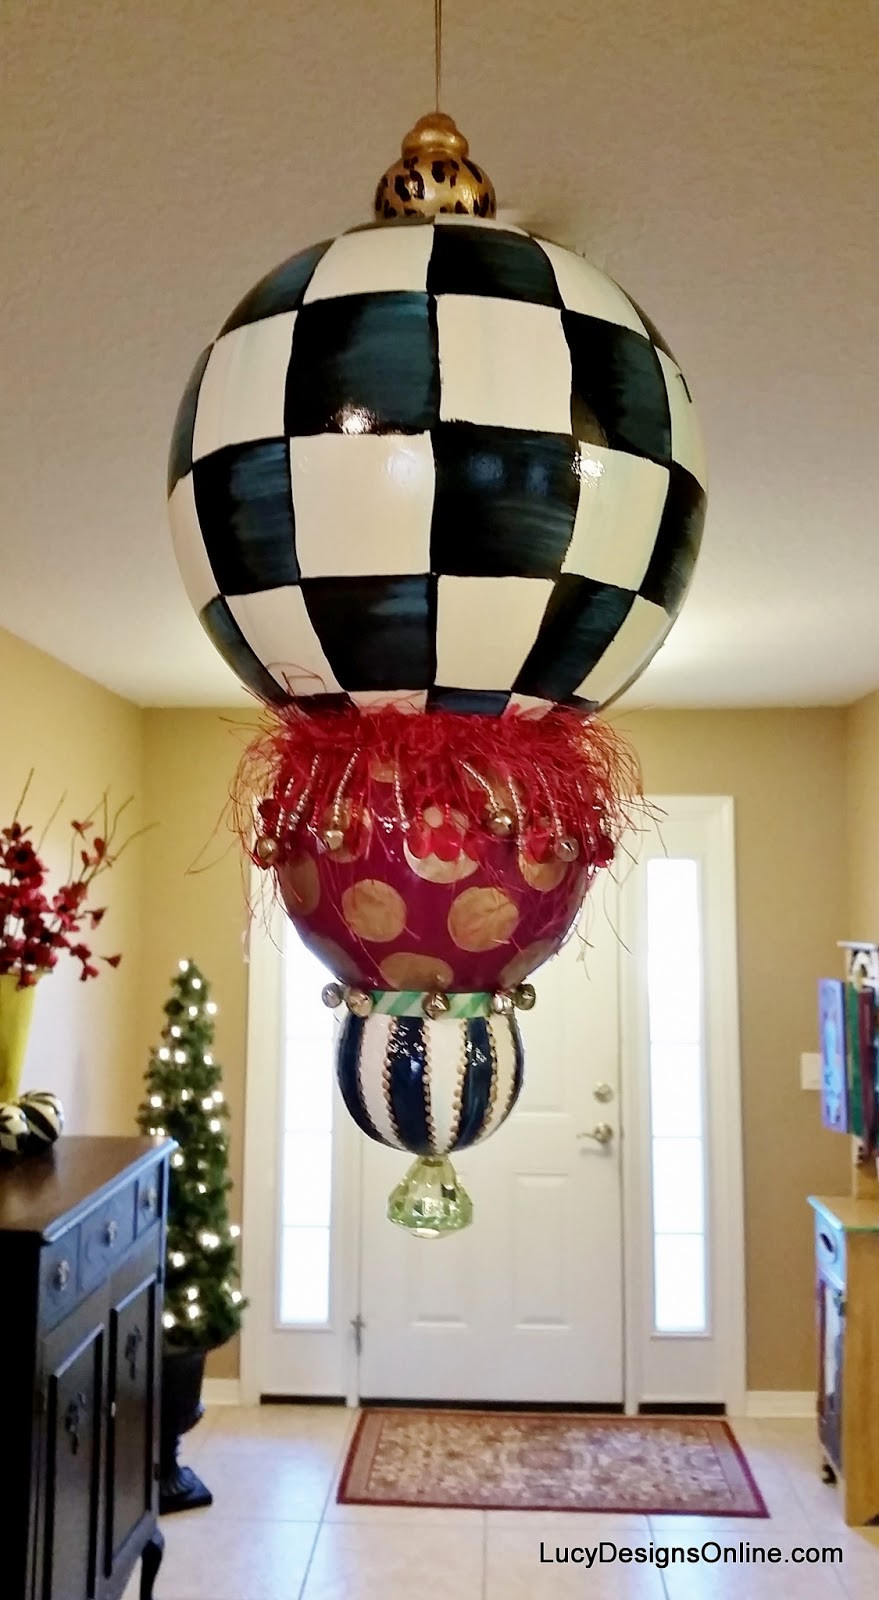 White Christmas ornaments Best Of Hand Painted Christmas ornaments Black and White Checks Of Attractive 44 Images White Christmas ornaments